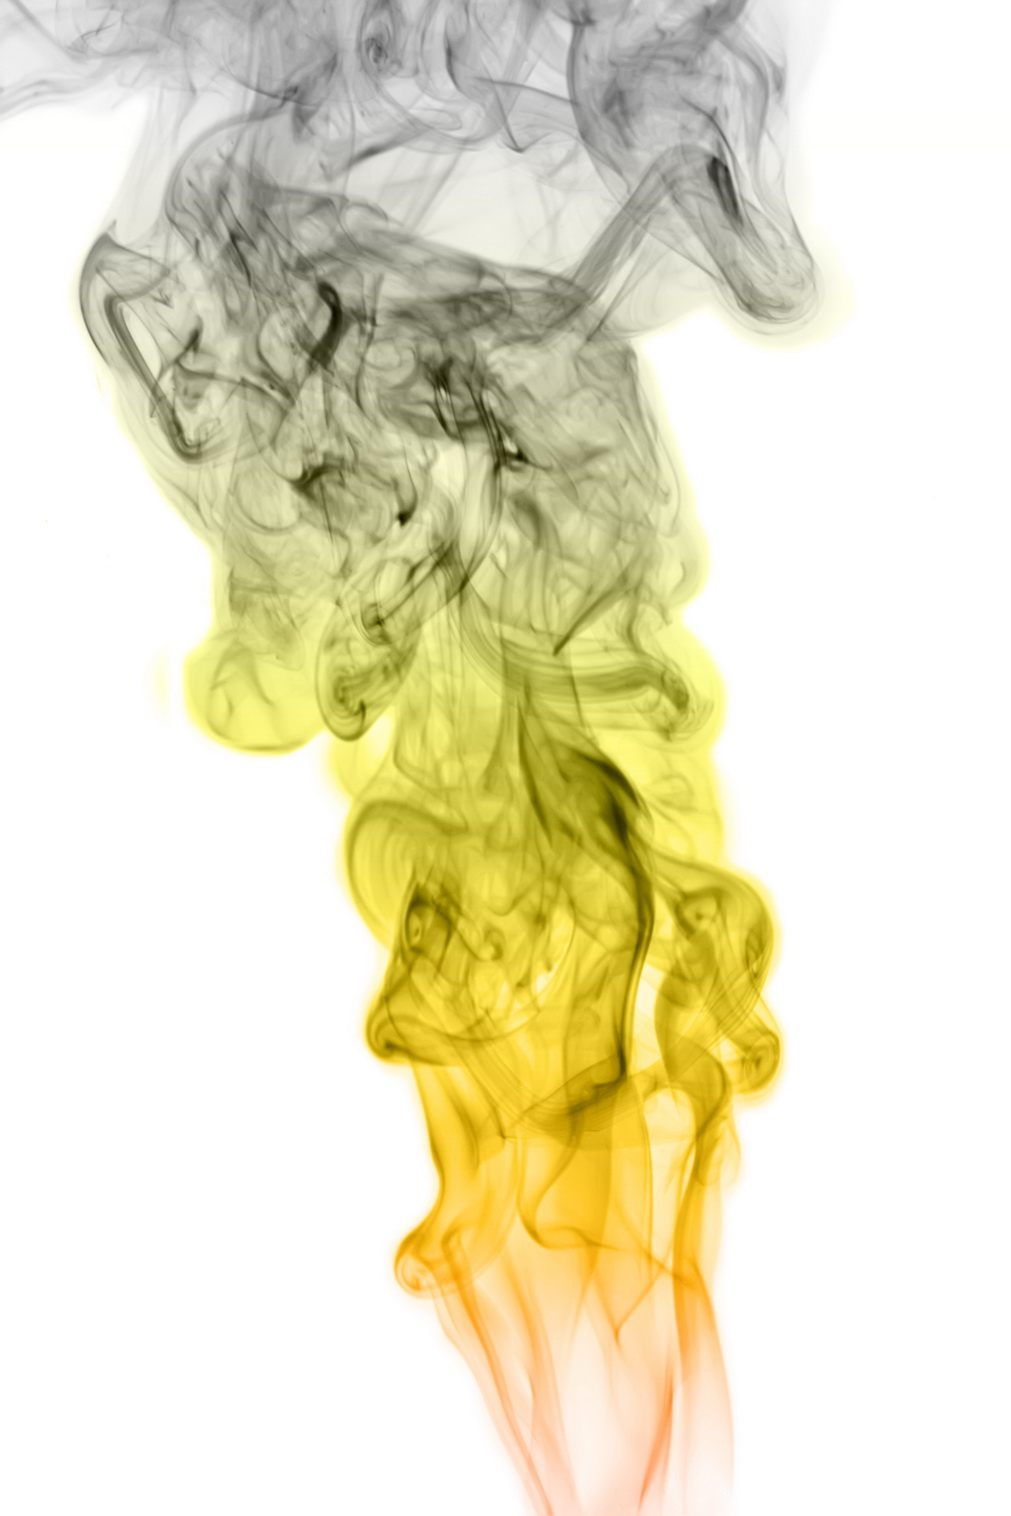 background of smoke, Abstract, Motion, Wave, Swirl, HQ Photo